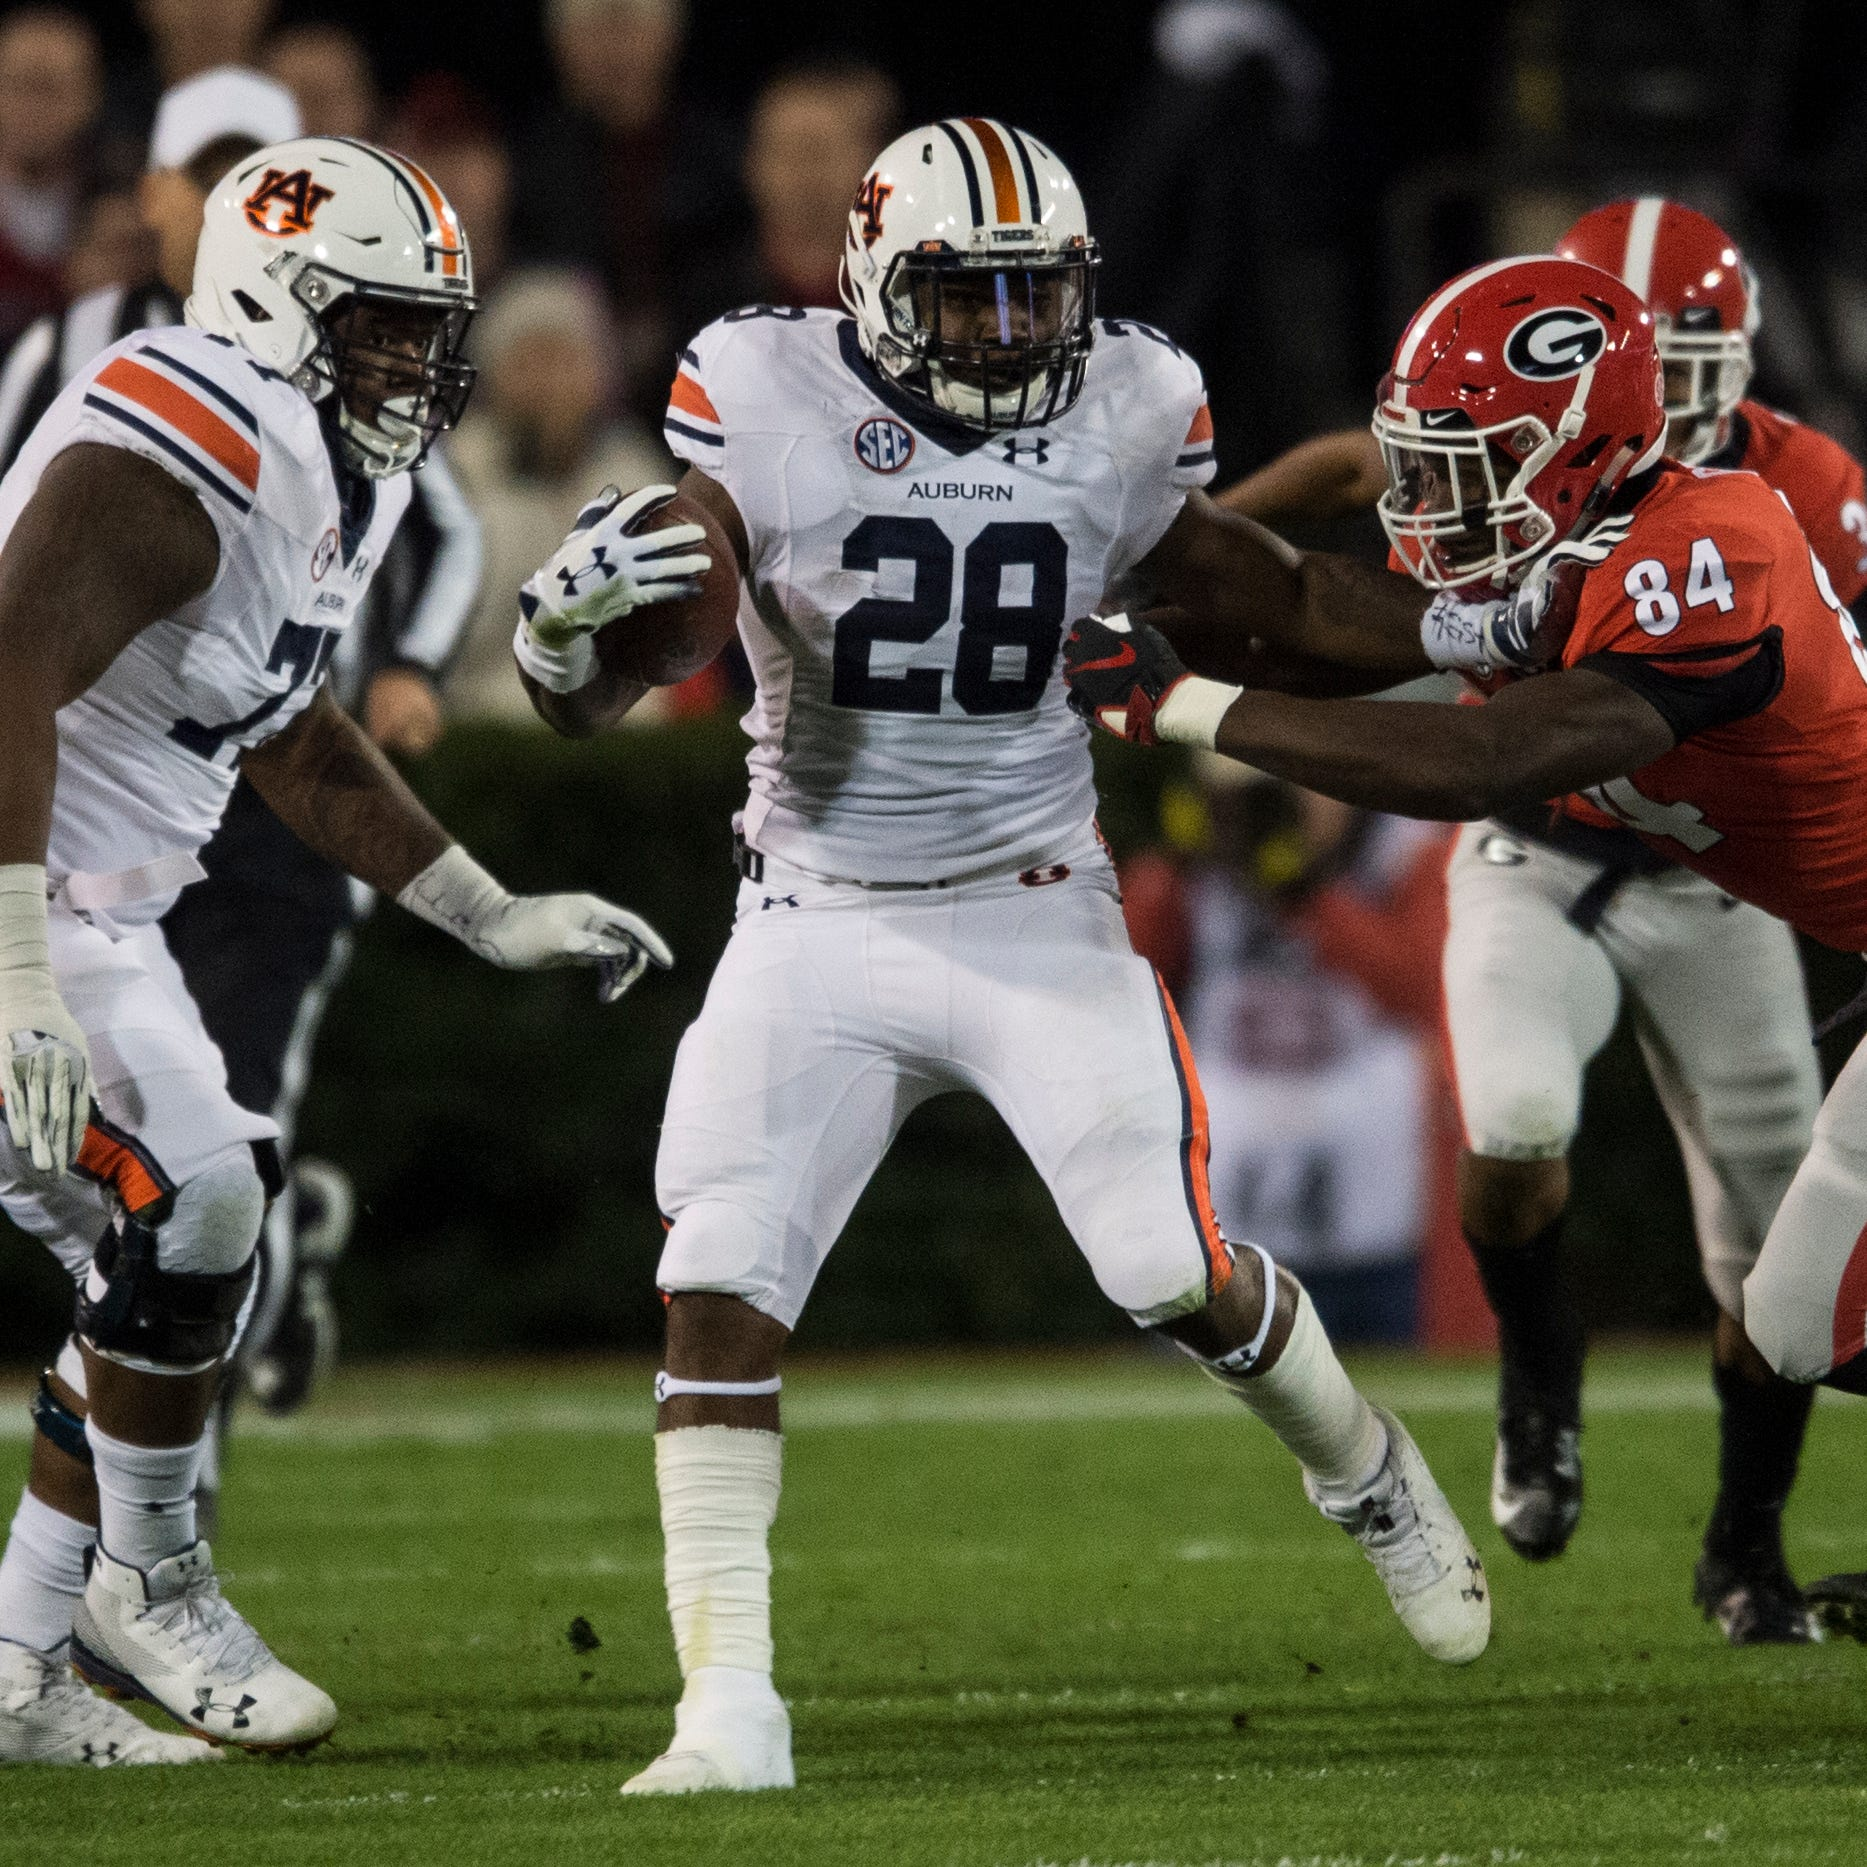 Auburn has preached 'we have to run the football better,' but it hasn't happened yet